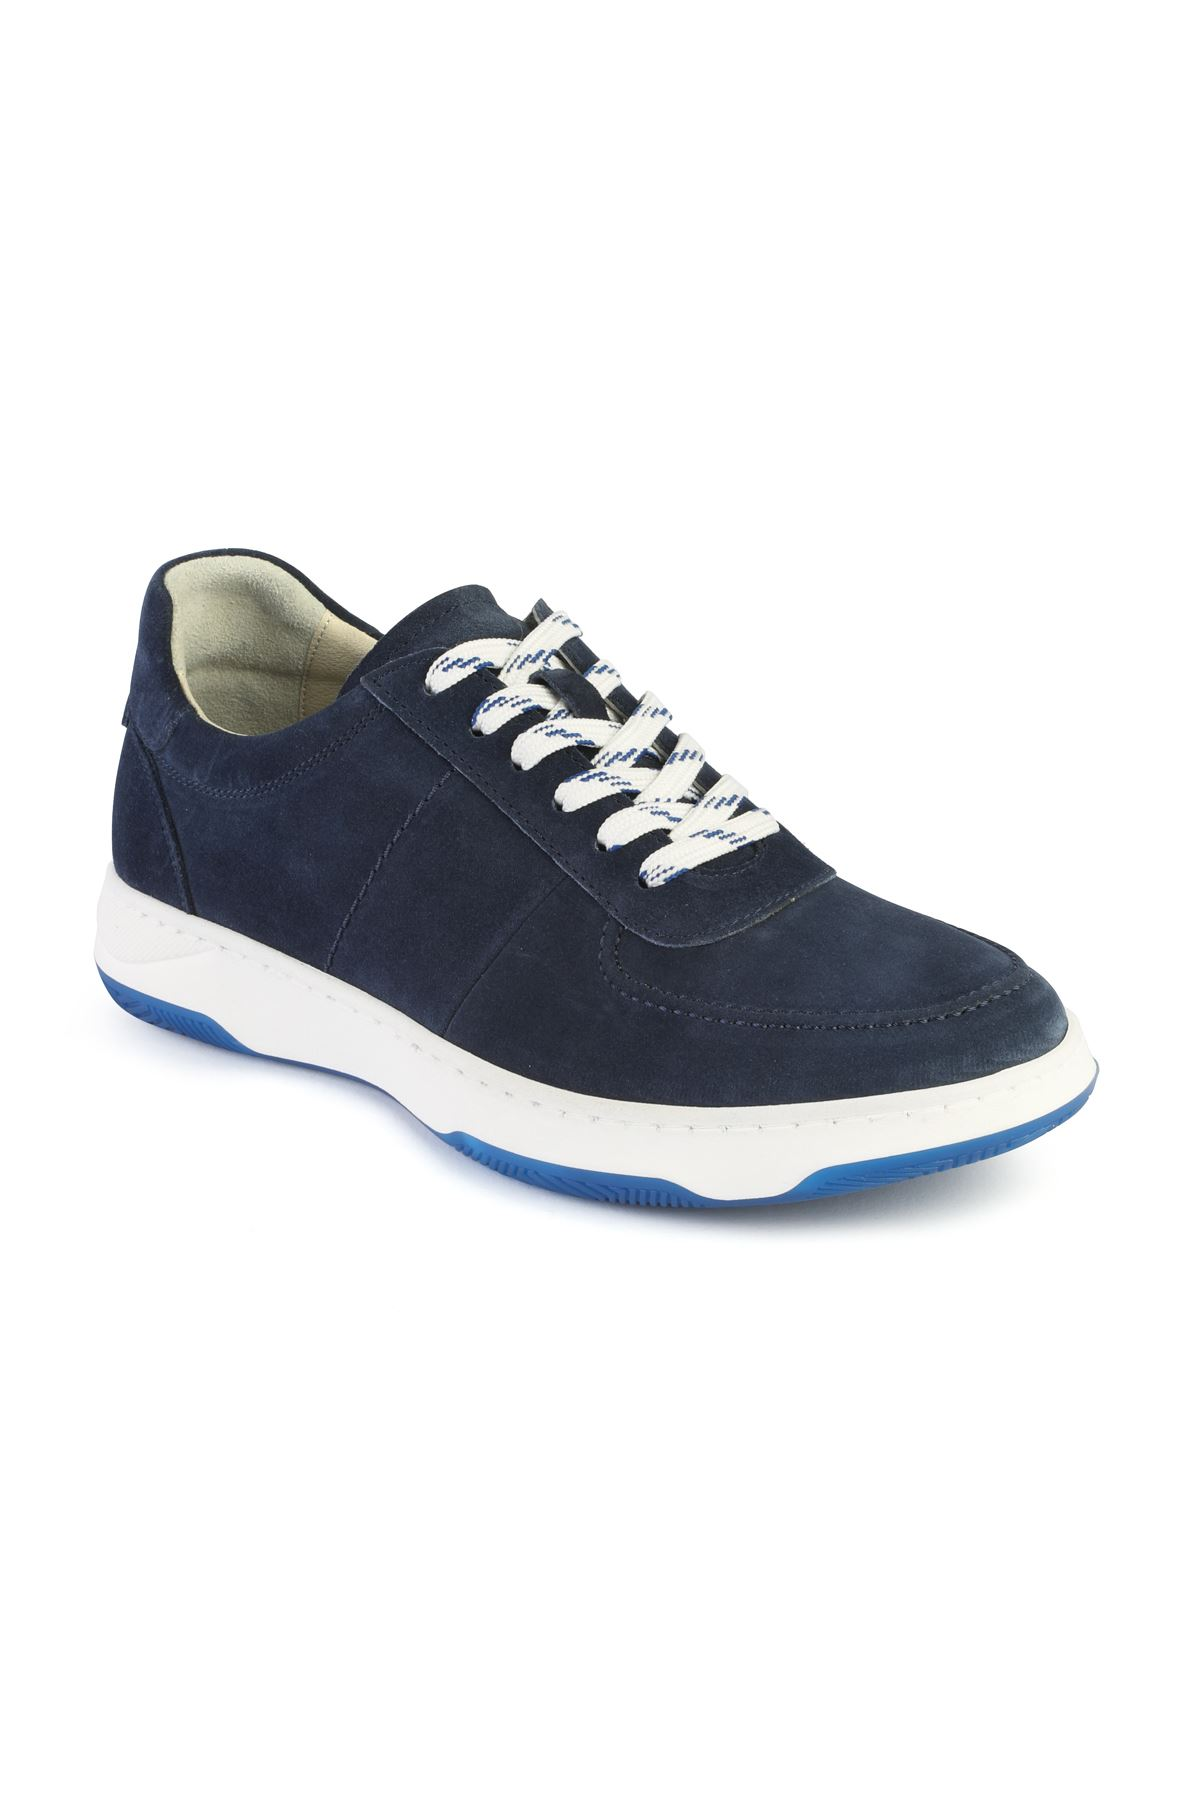 Libero 3228 Navy Blue Sports Shoes